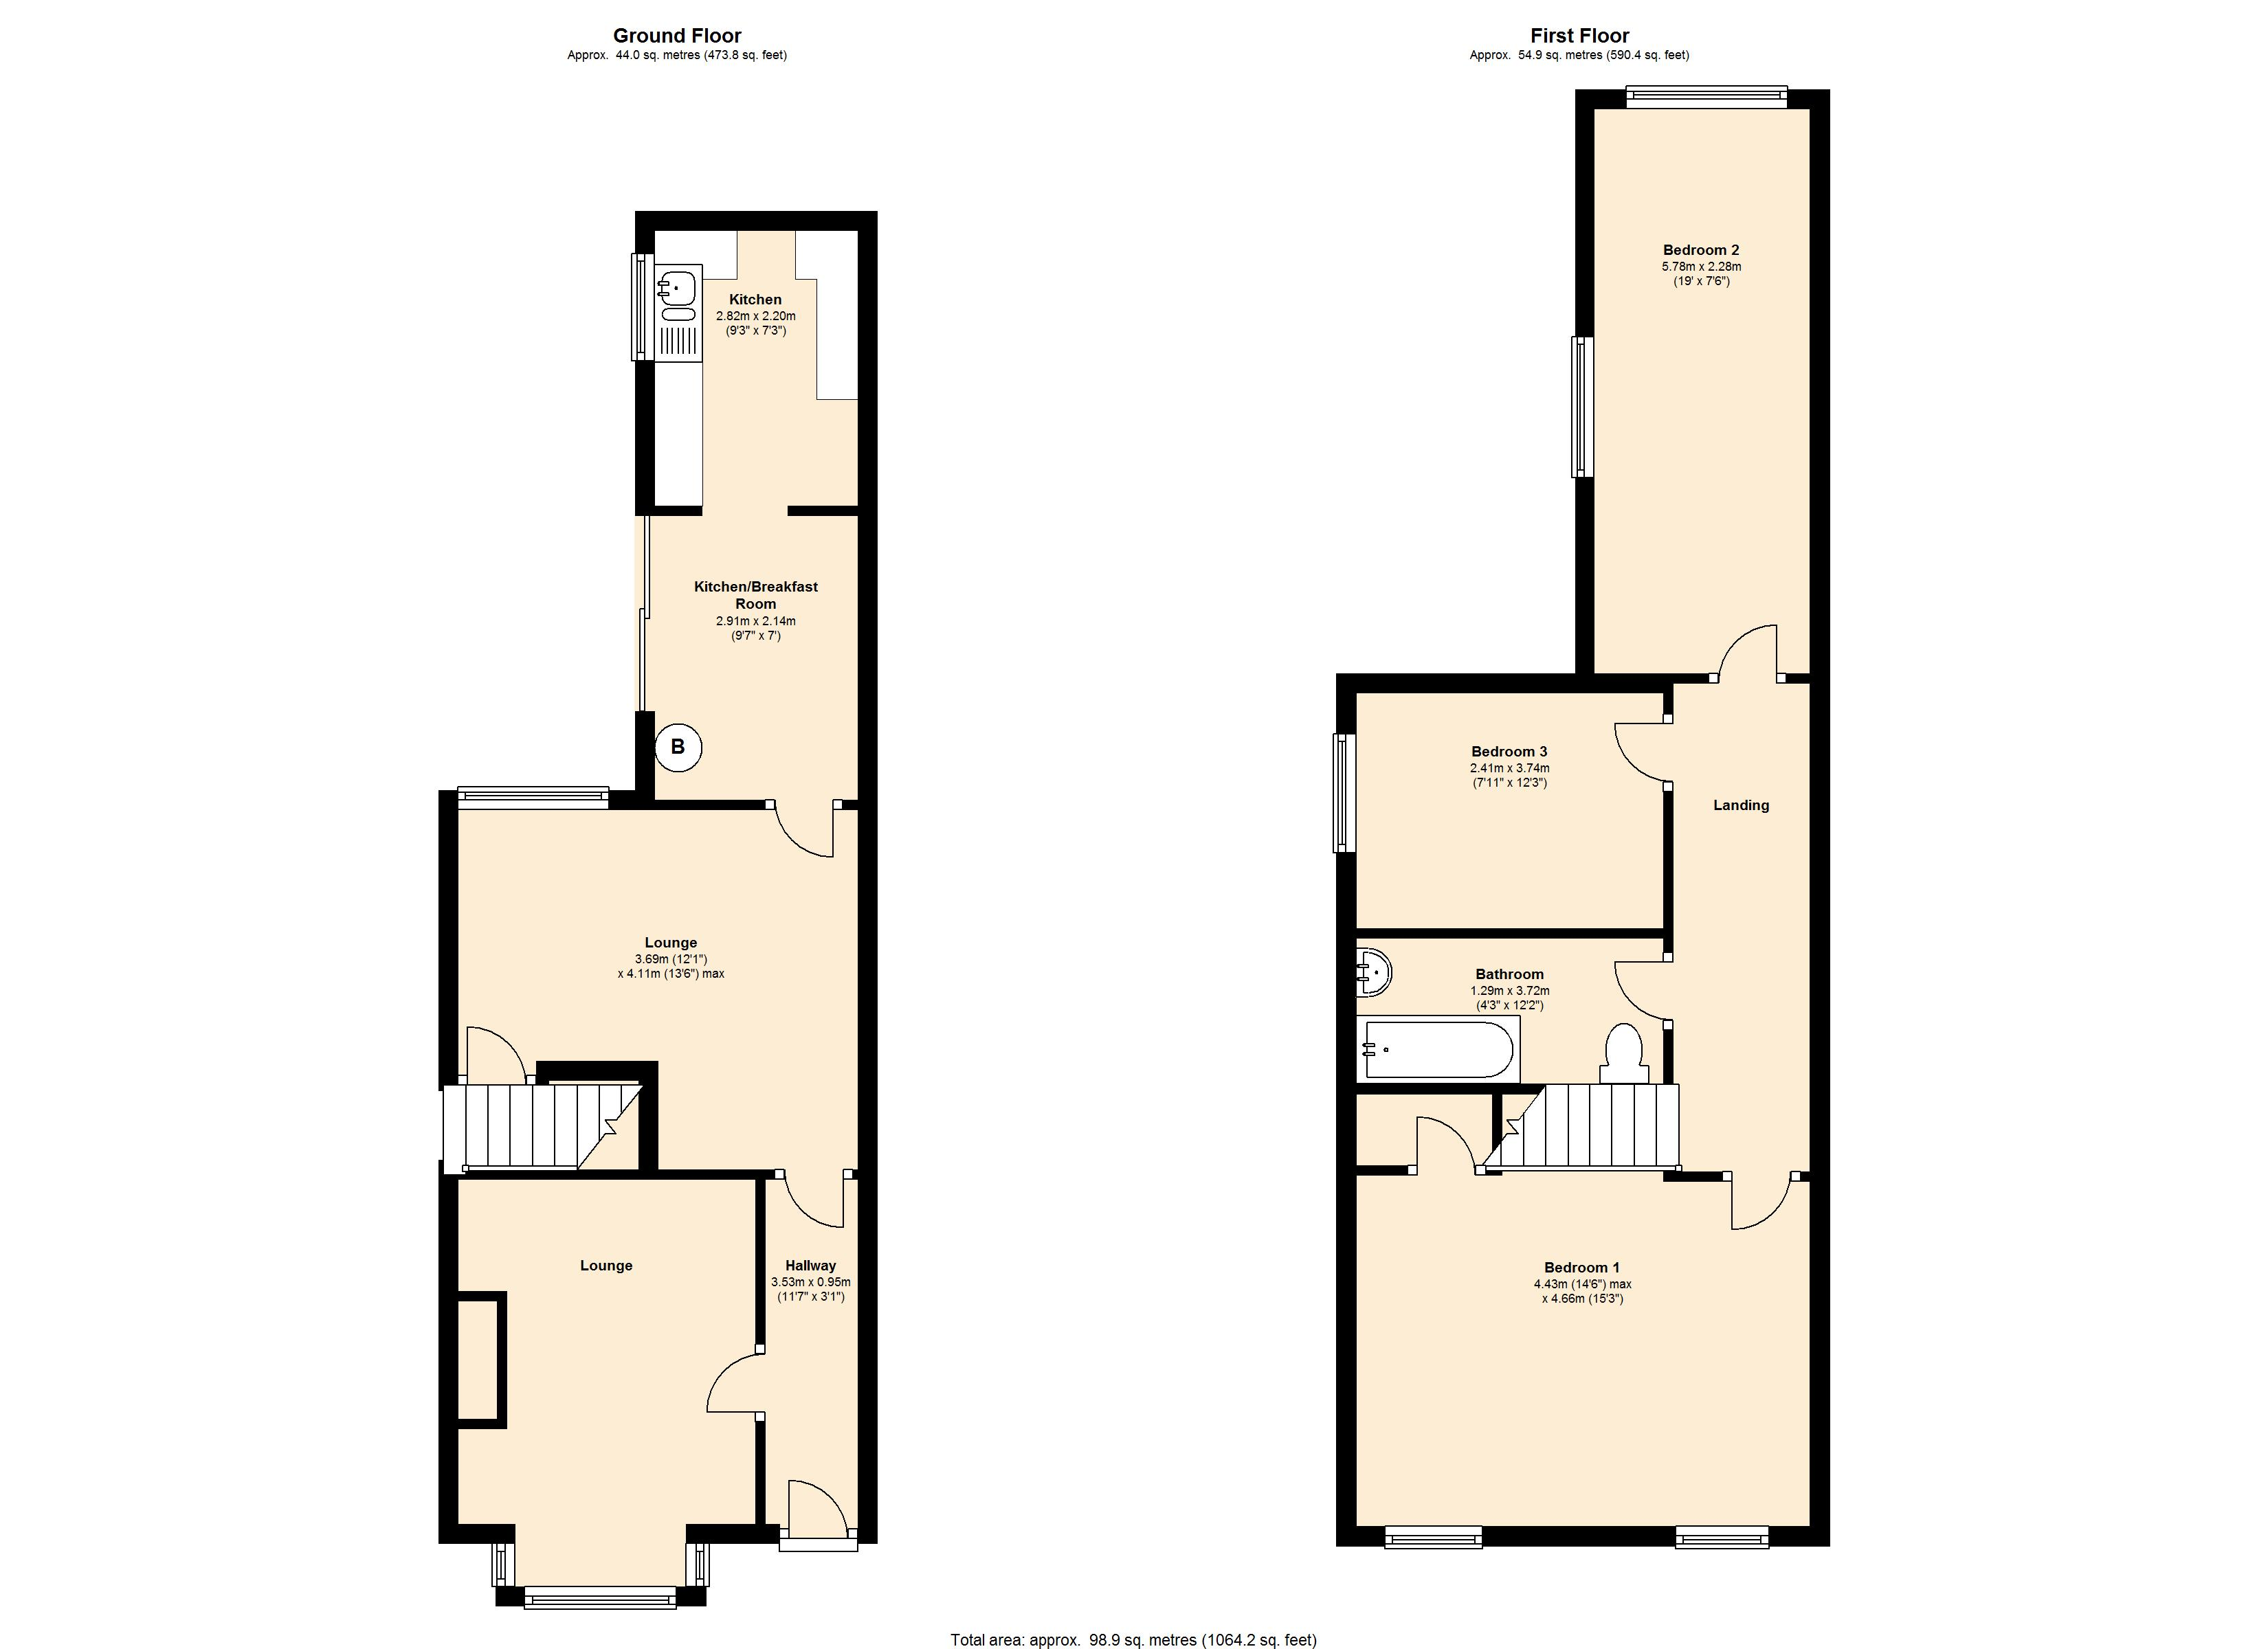 Coventry Road, Small Heath Birmingham B10 floor plan